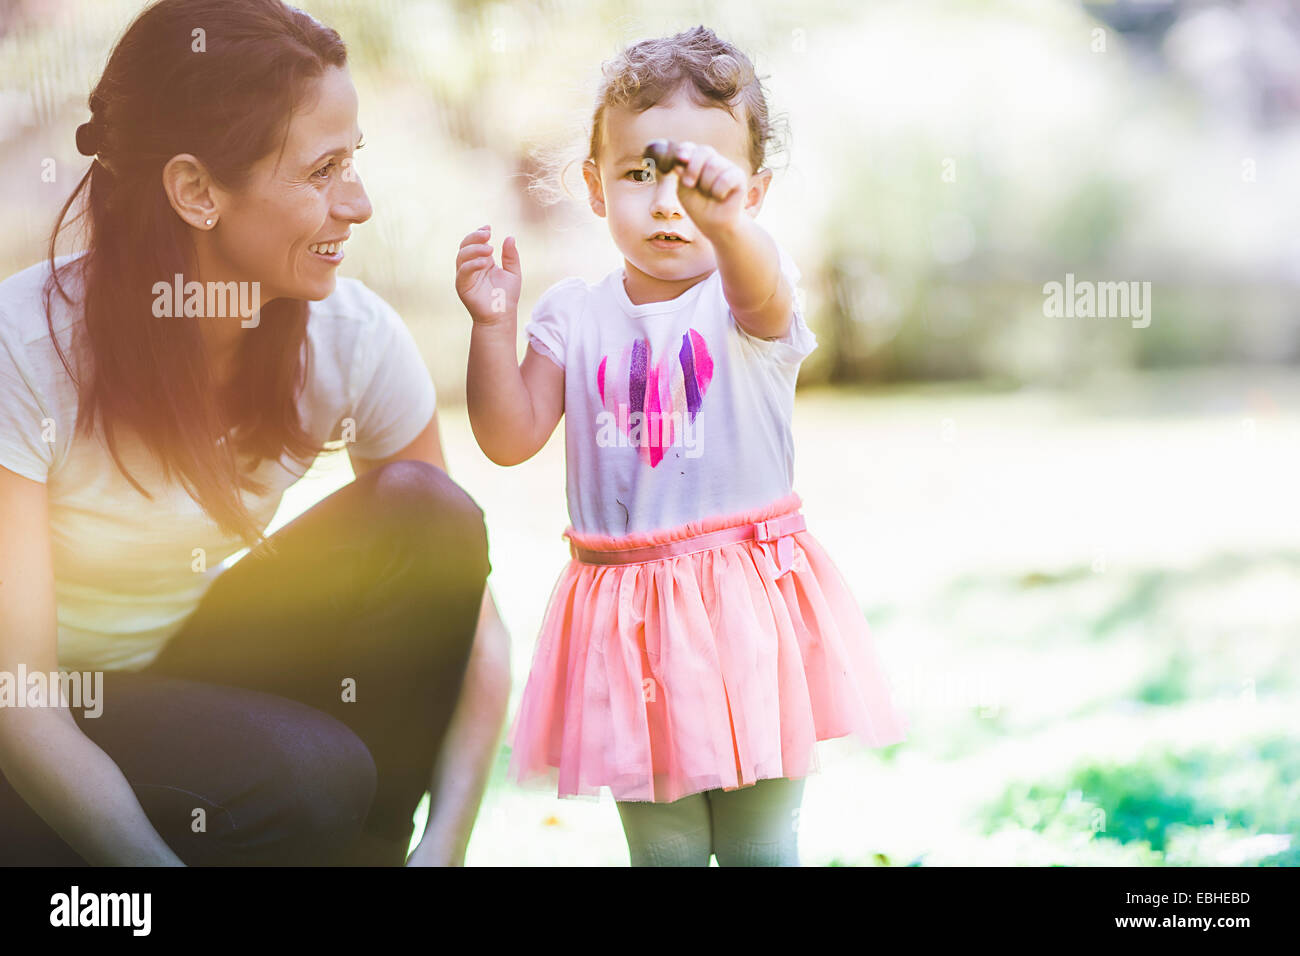 Mother and daughter playing in garden - Stock Image